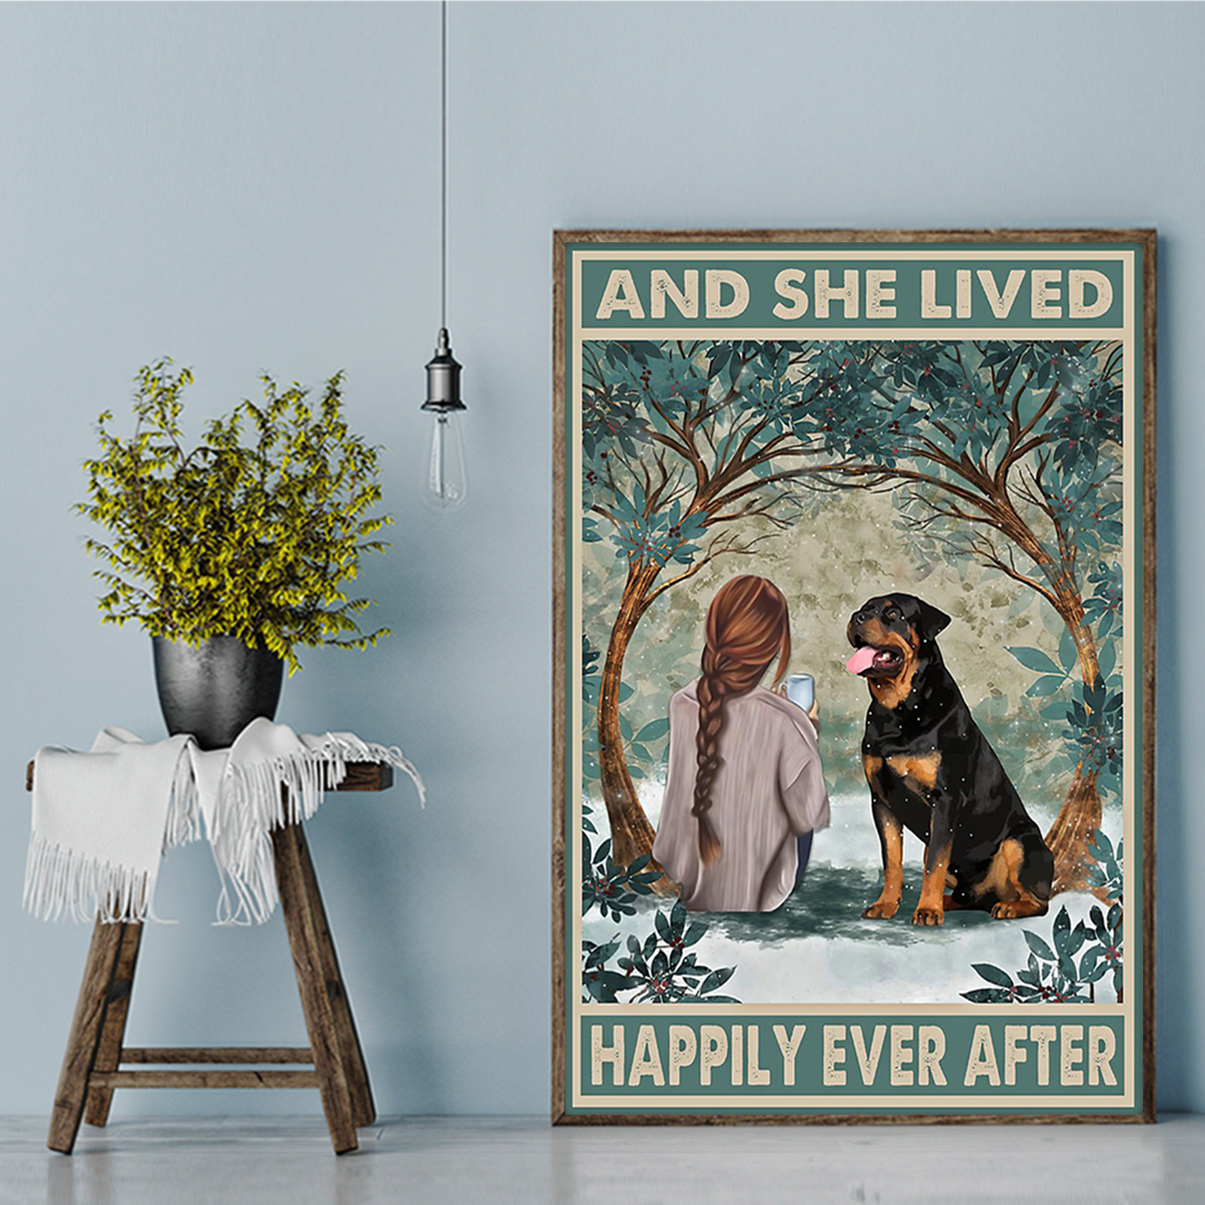 Rottweiler and she lived happily ever after poster A3